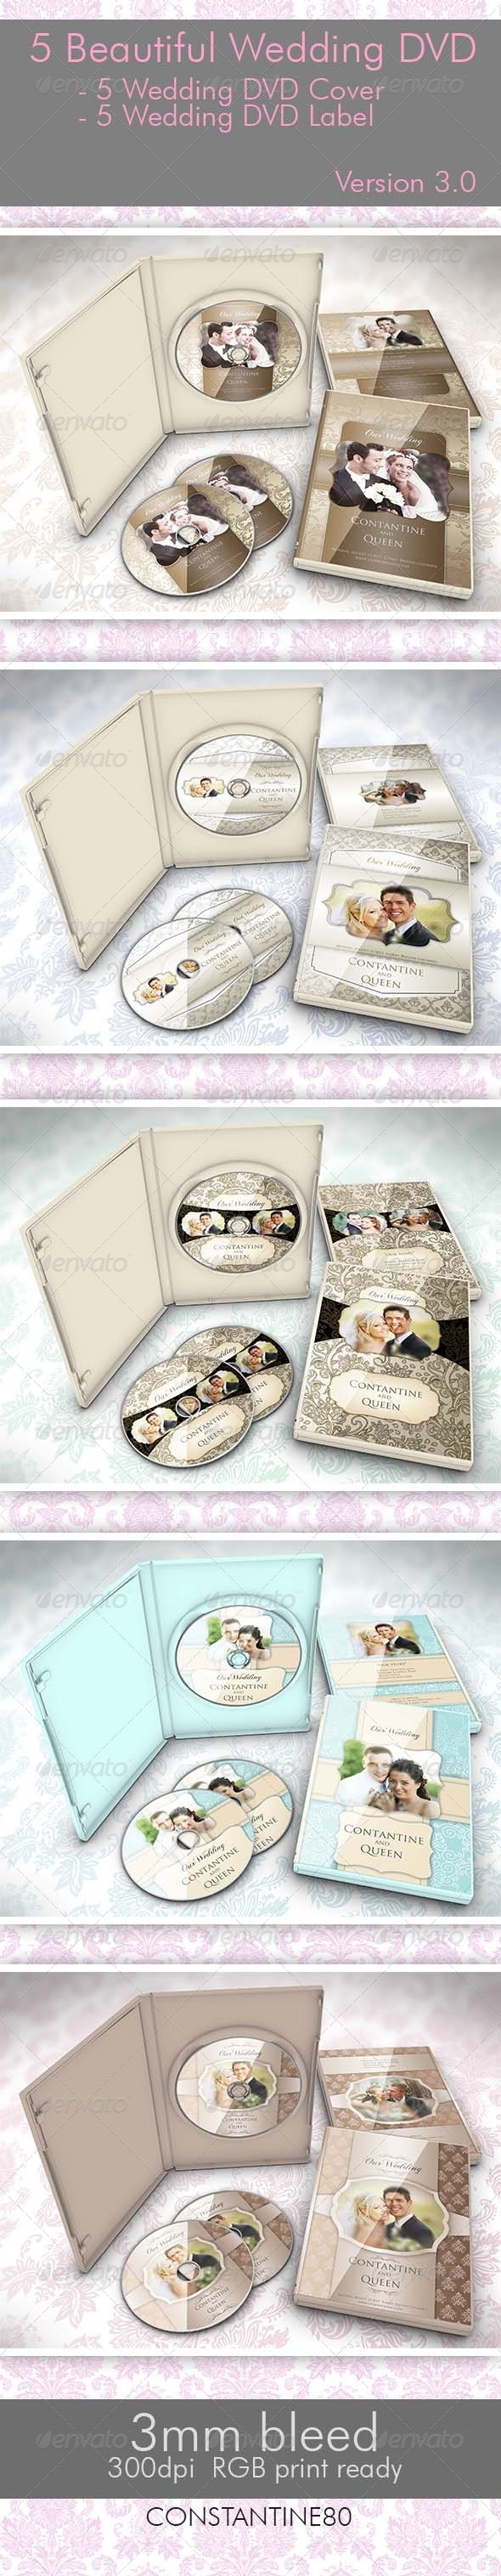 5 Beautiful Wedding DVD Ver 3.0 - Weddings Cards & Invites